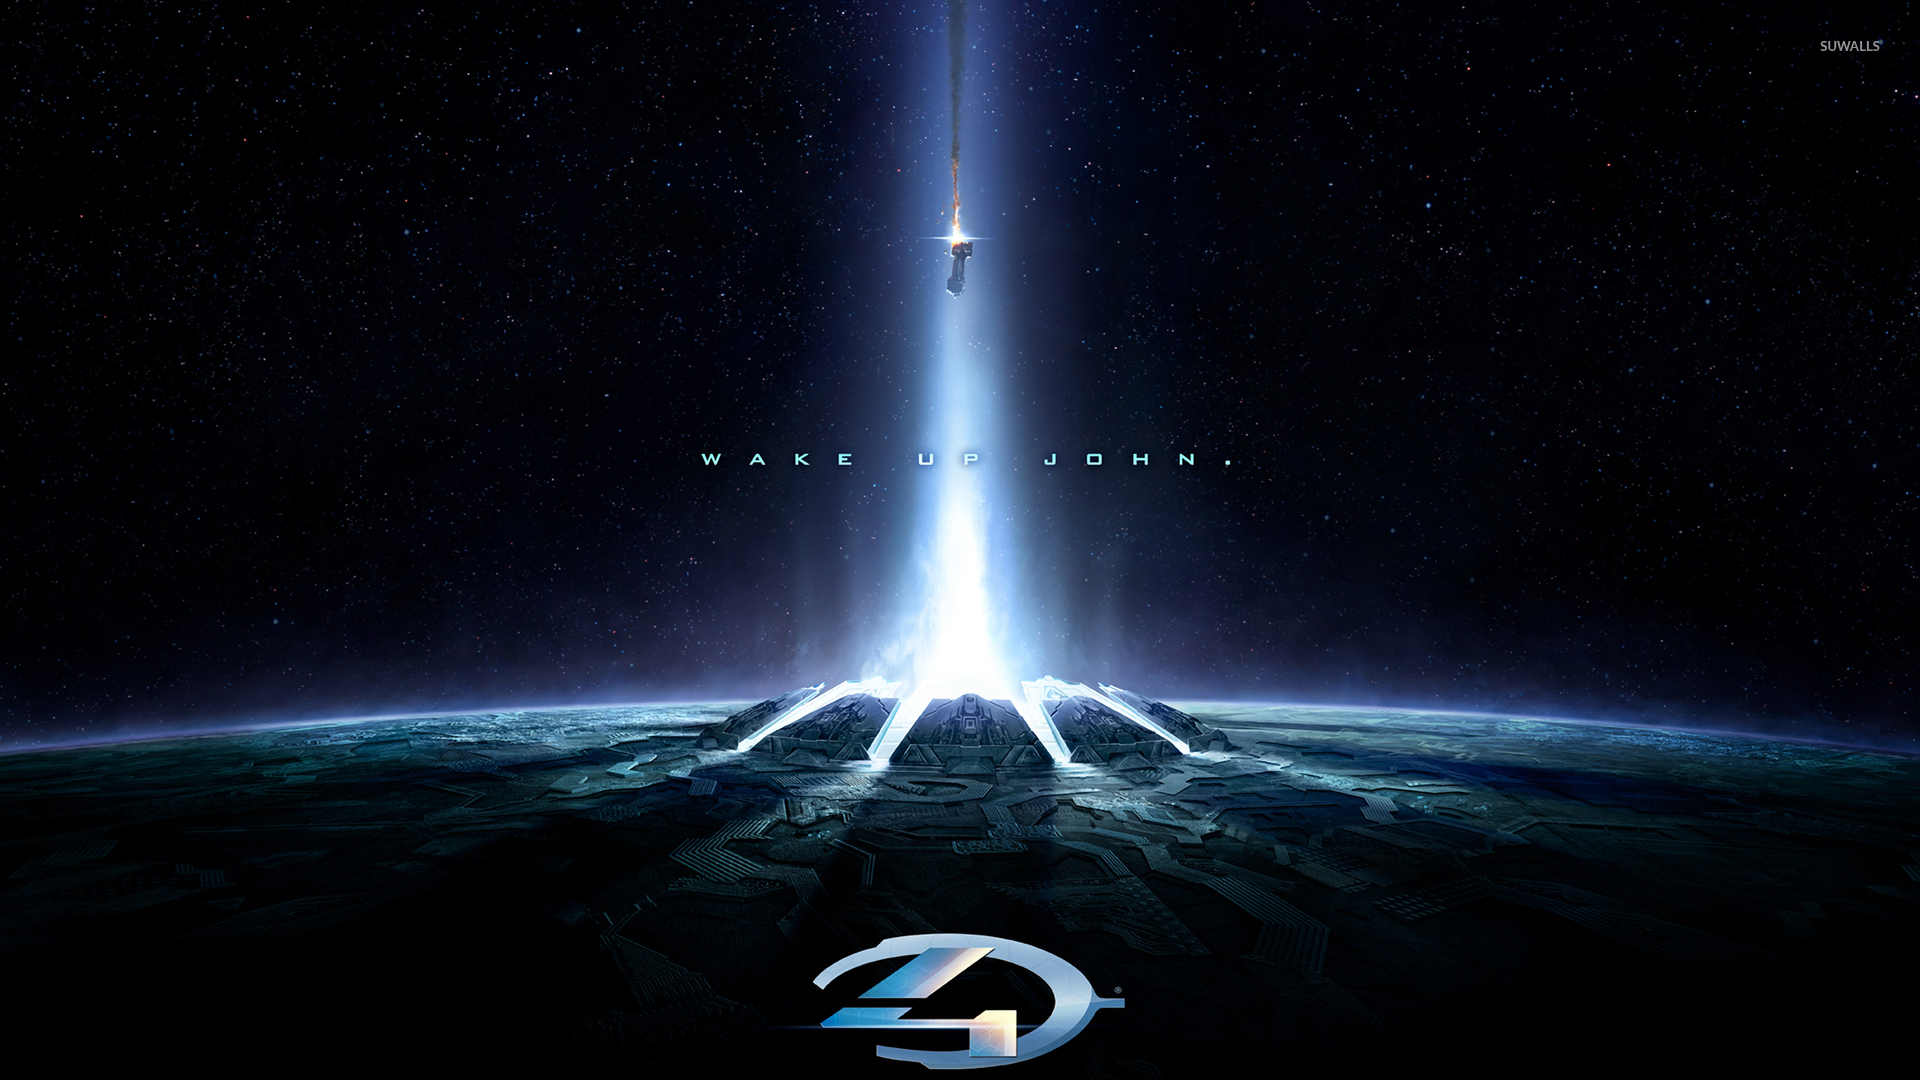 Halo 4 wallpaper   Game wallpapers   6972 1920x1080